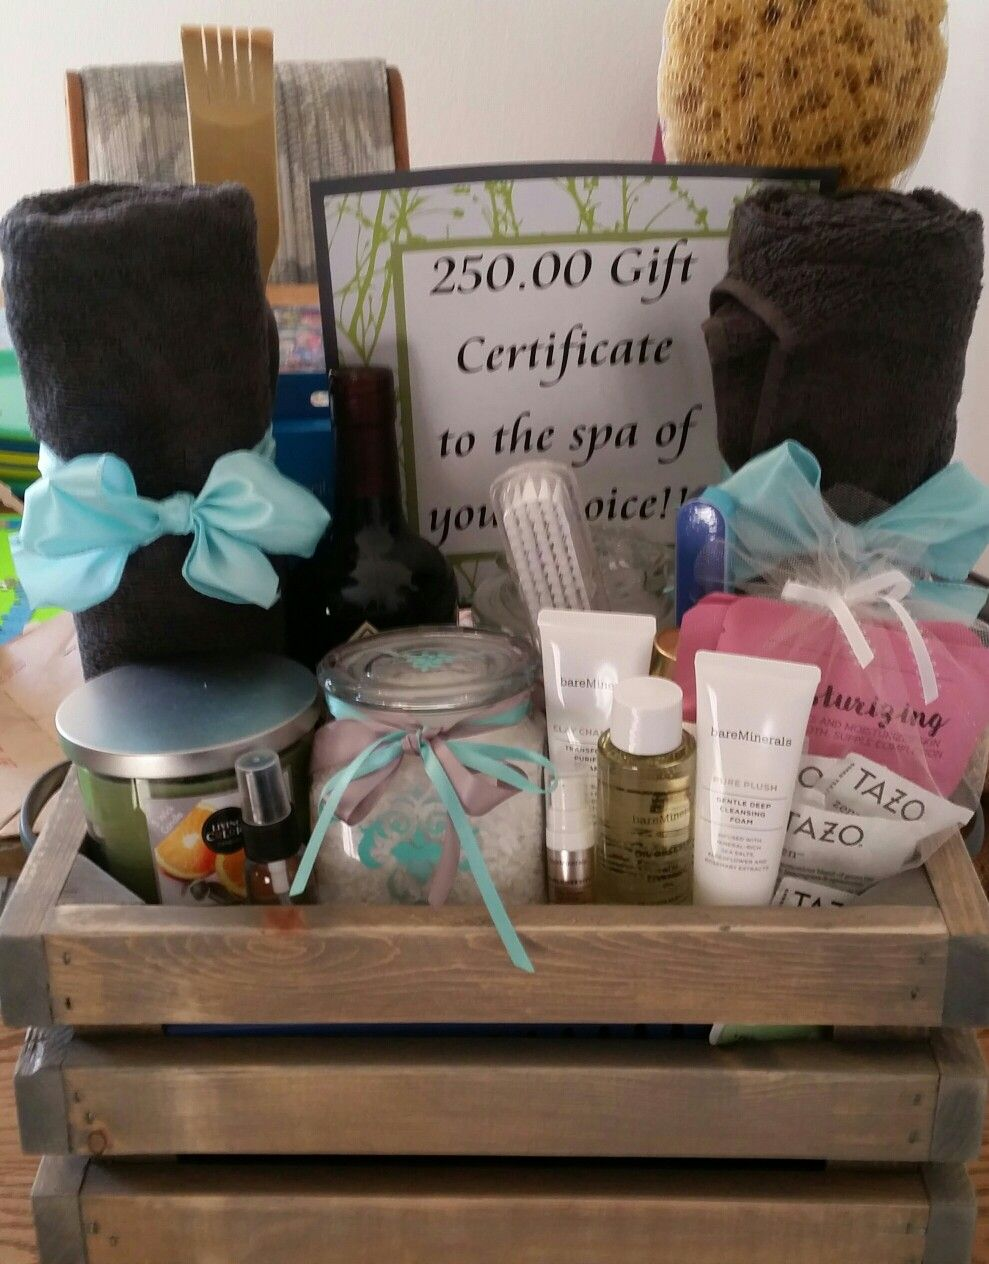 Handmade crate, bath salts and bath bombs stored in hand painted jars for a DIY spa day gift basket.